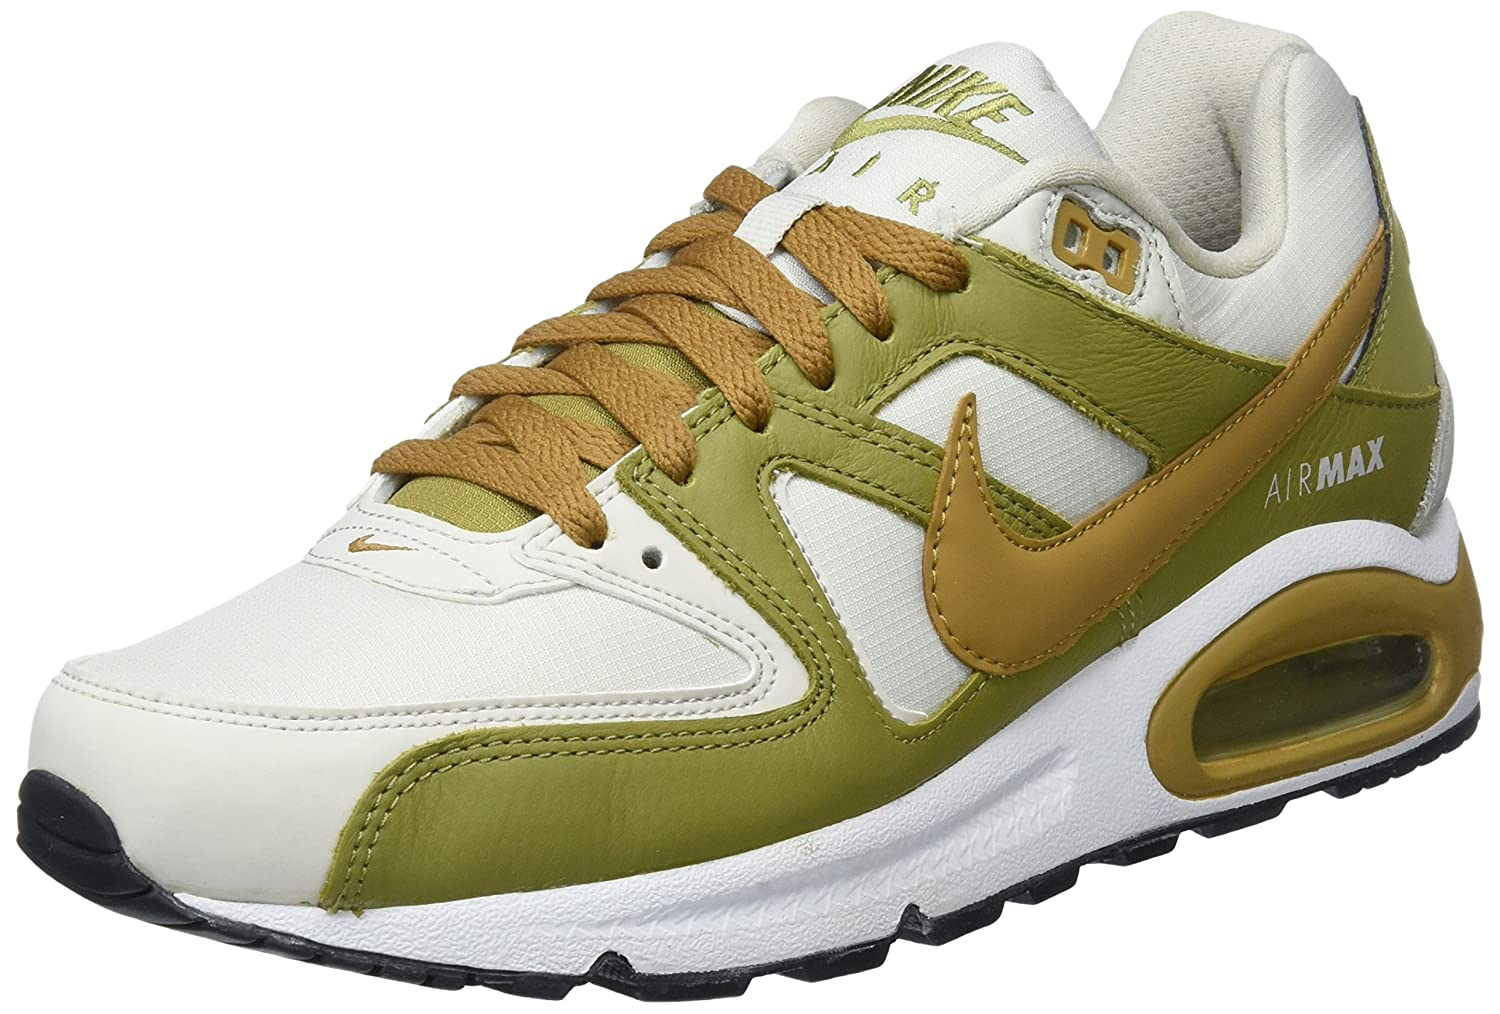 buy online cfce7 18141 Amazon.com   Nike Men s Air Max Command Gymnastics Shoes   Fashion Sneakers